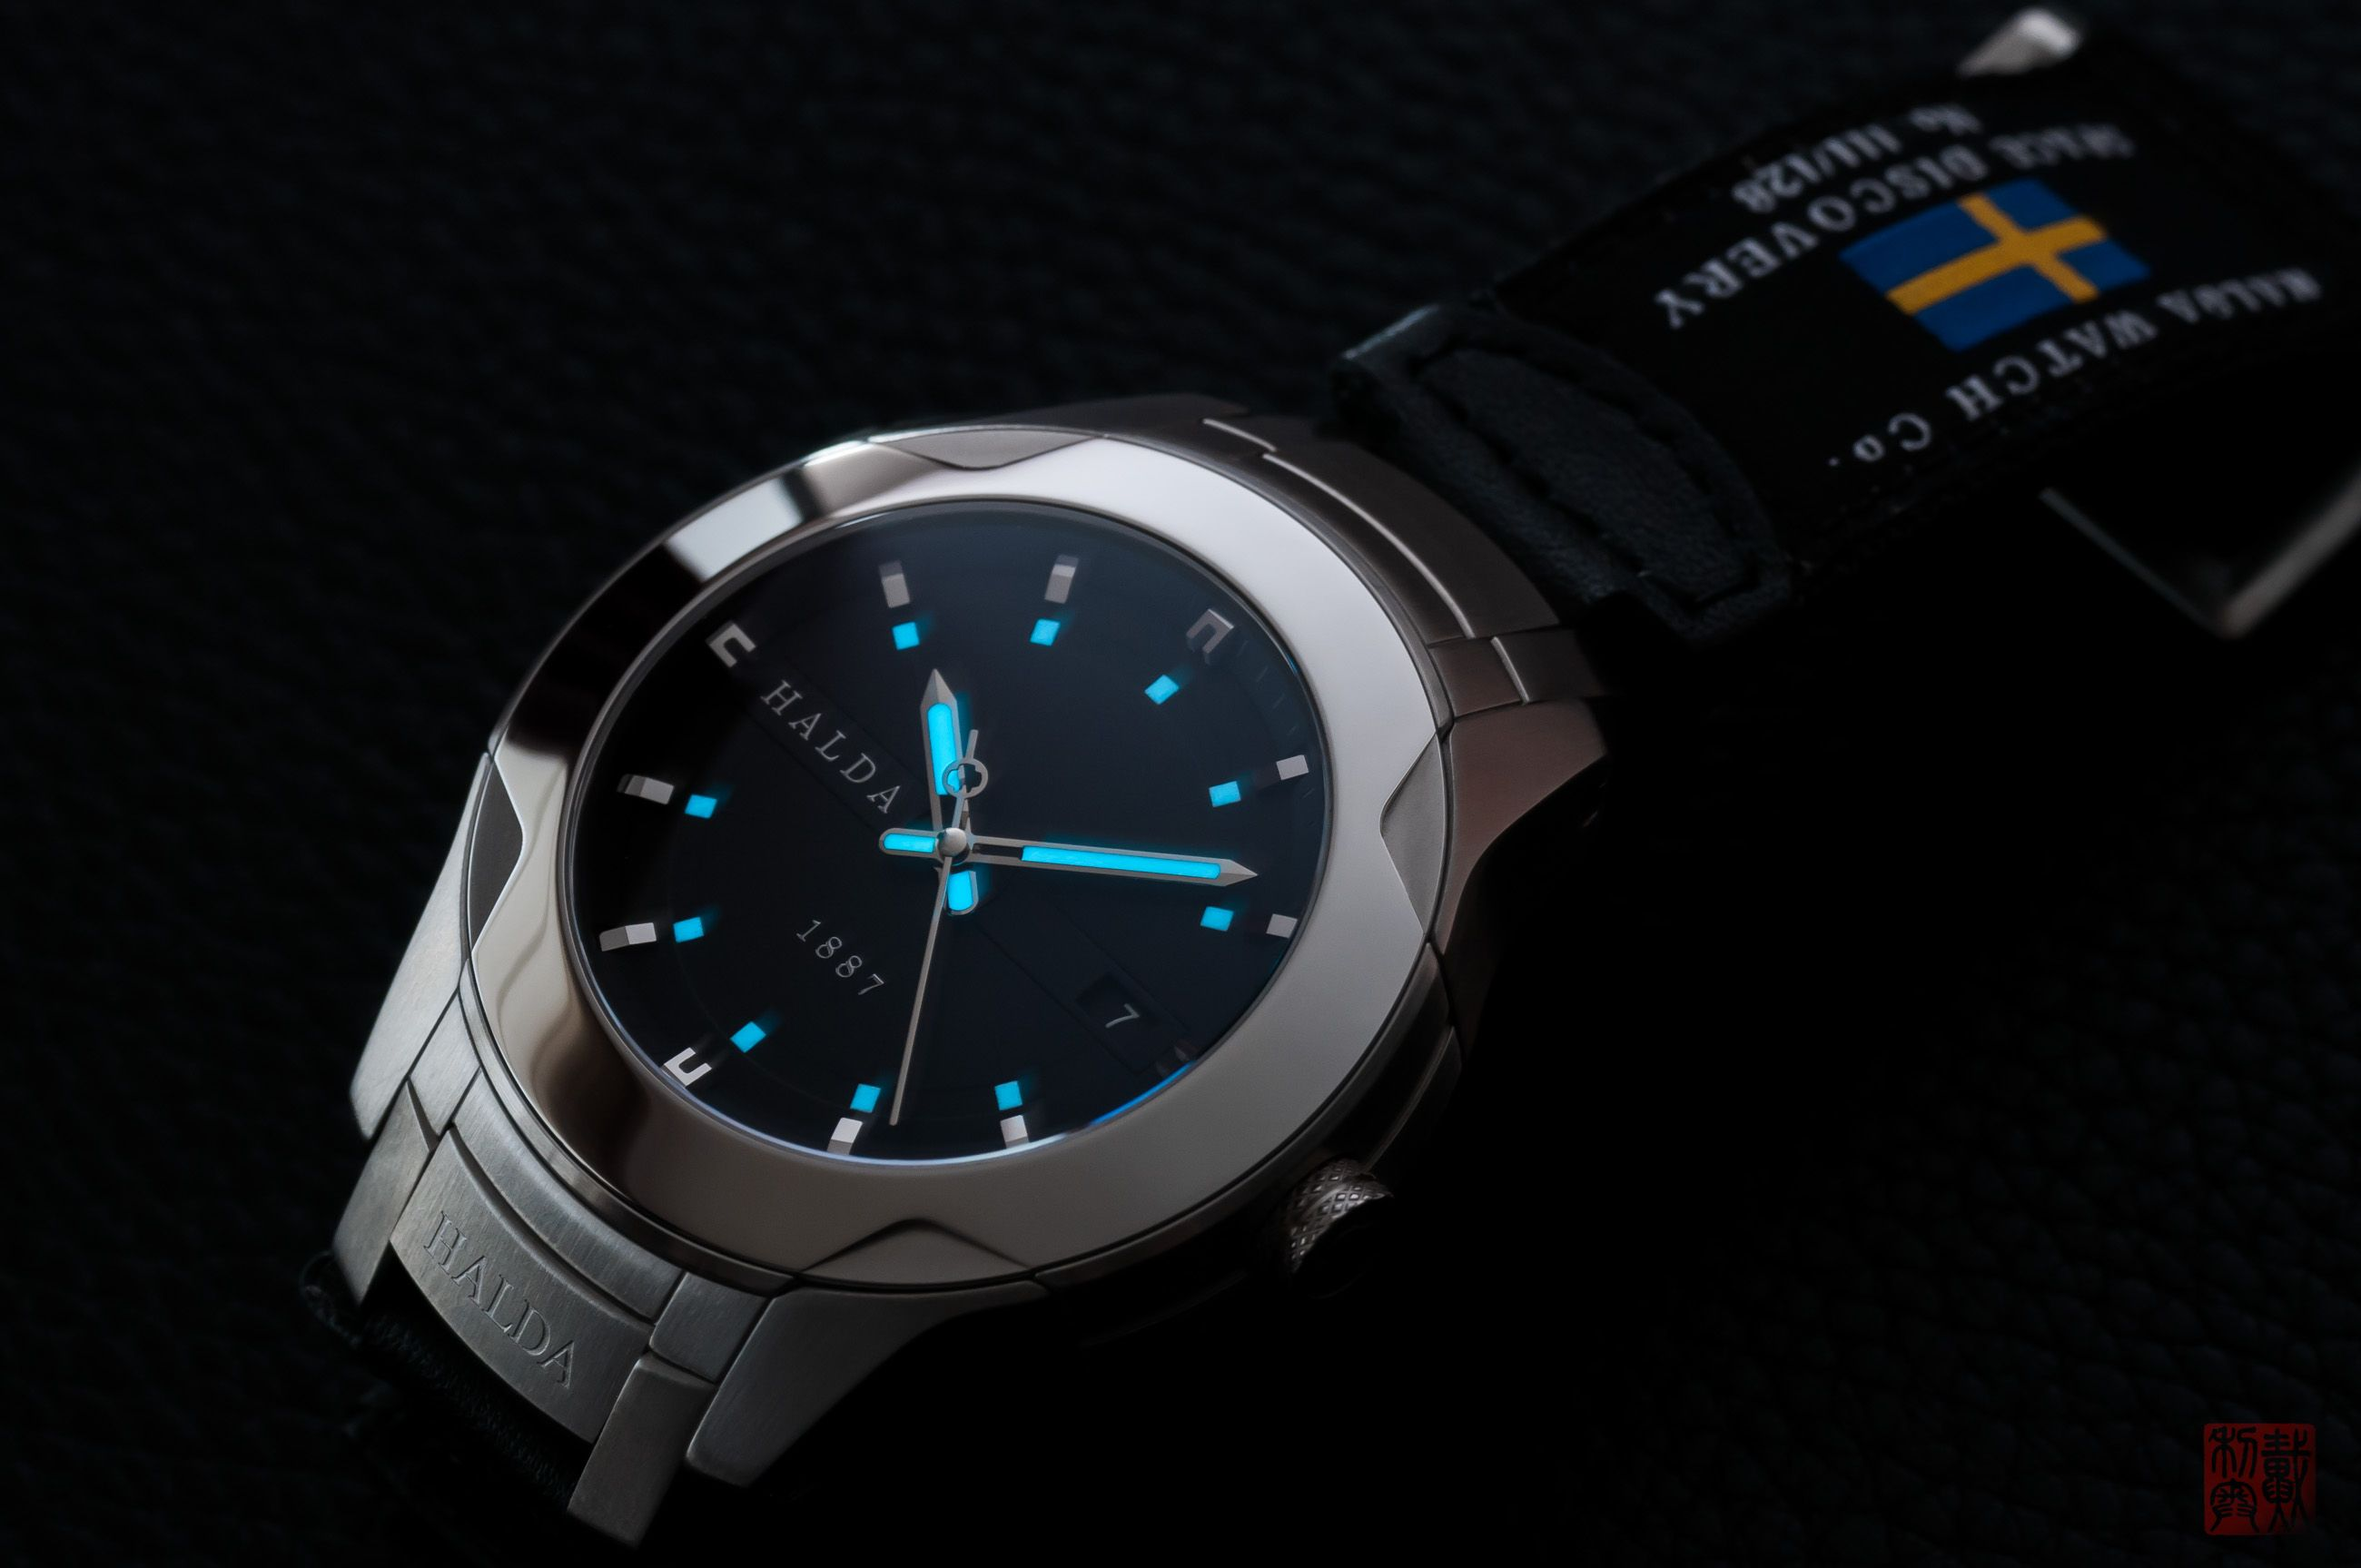 Halda Sweden Space Discovery First Watch Designed For And In Collaboration With Astronauts That Have Been In Space H Watch Anish Watch Design Wrist Watch